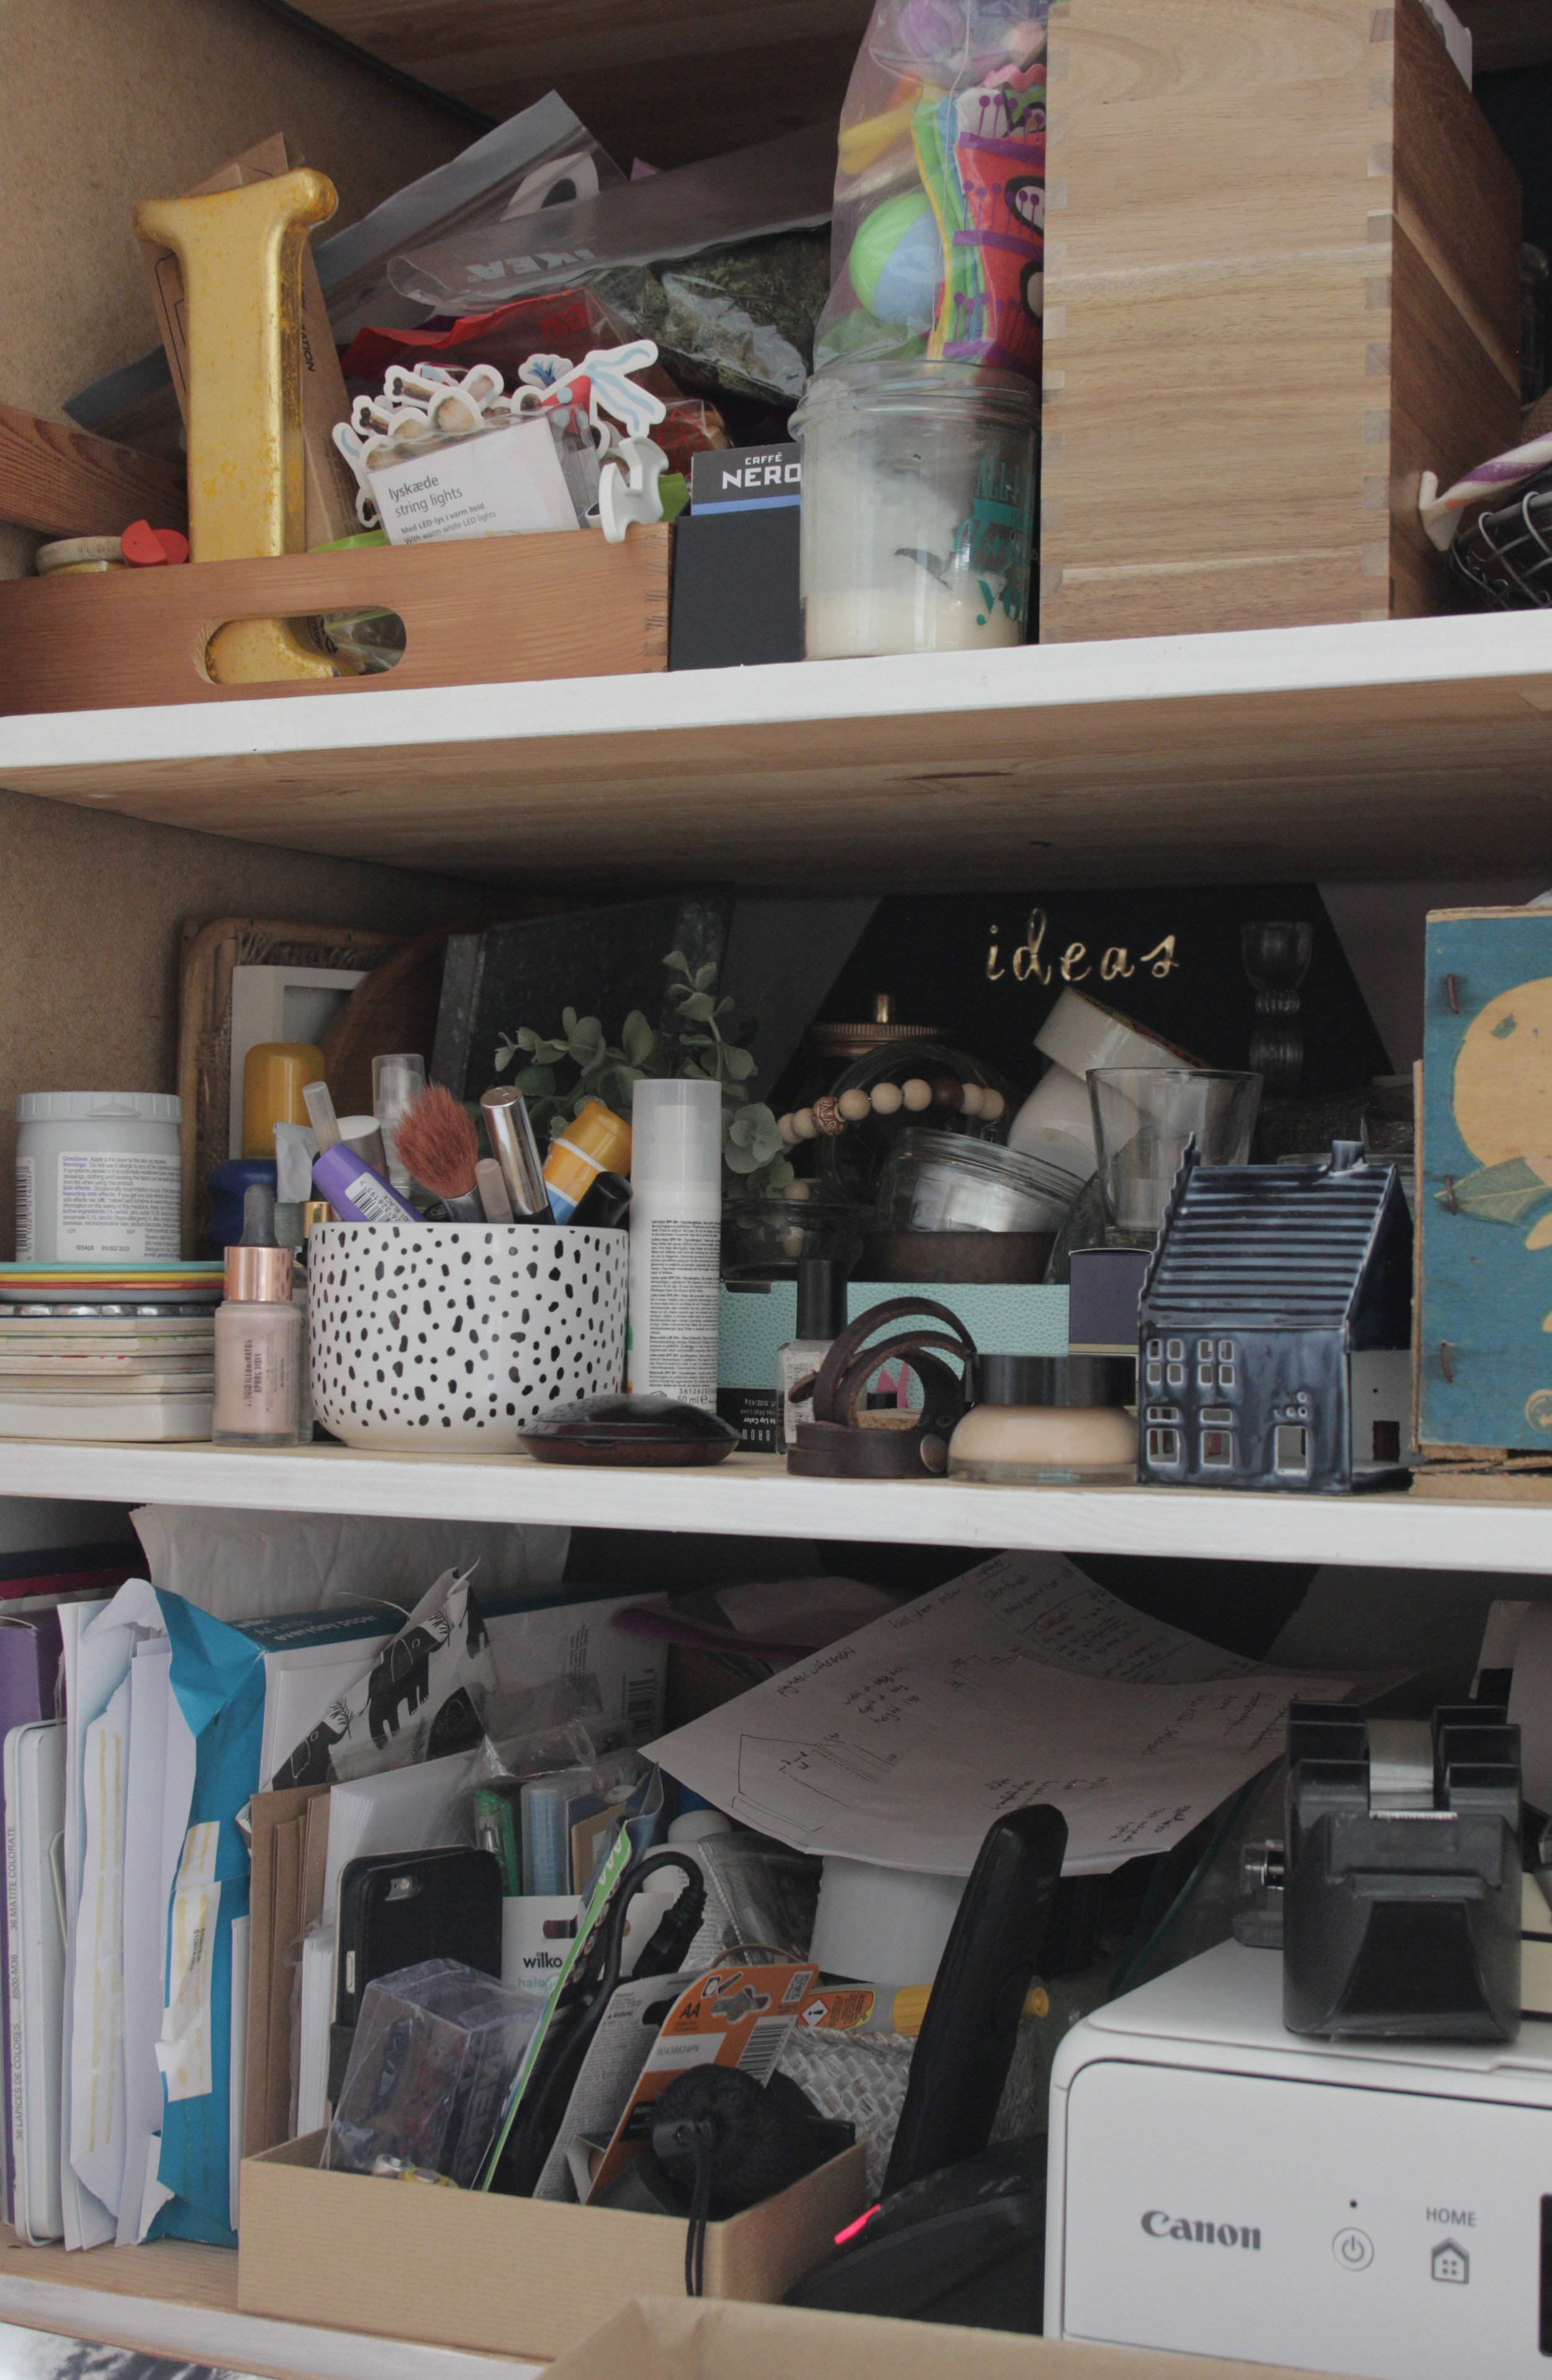 This cupboard needs a tidy!!